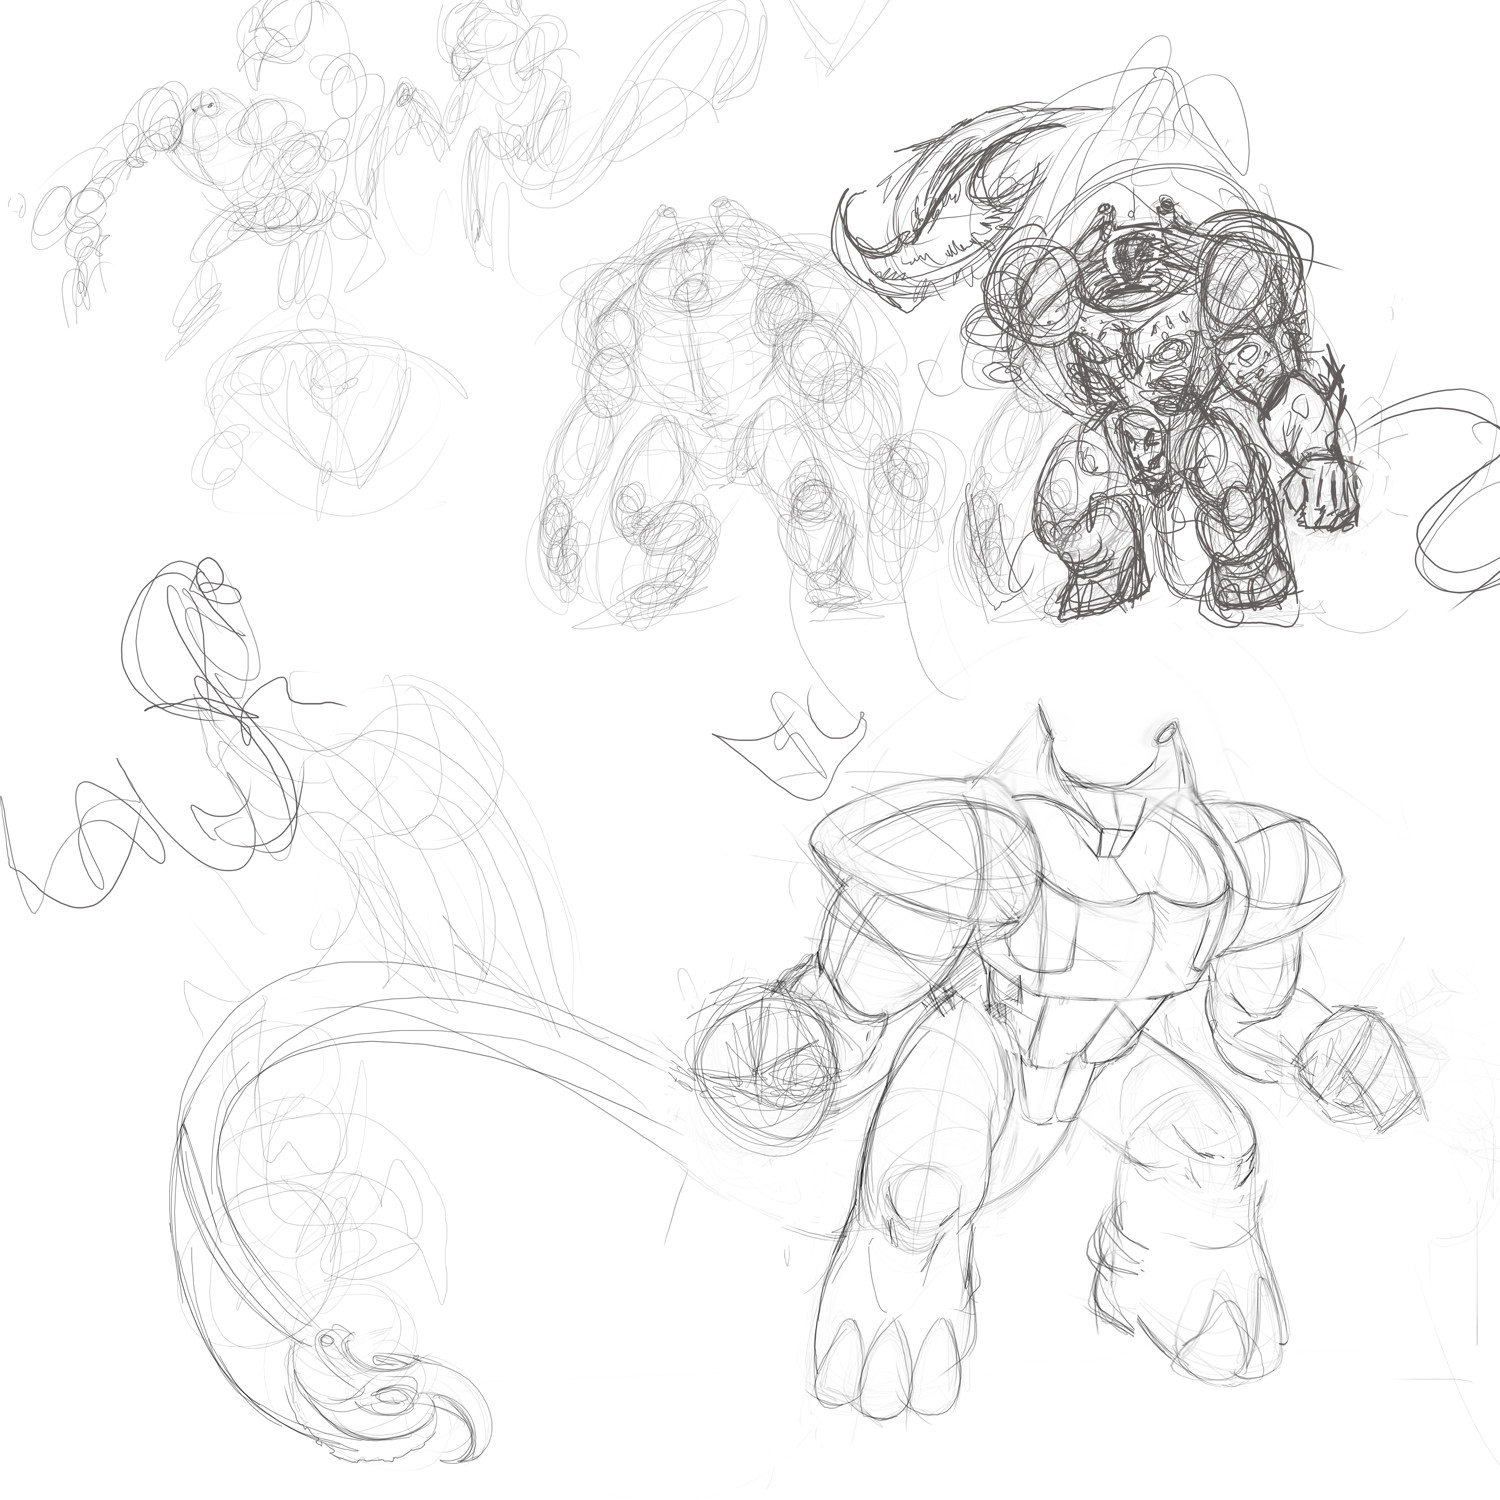 I sketched some more ideas until I came up with a strong looking monster.